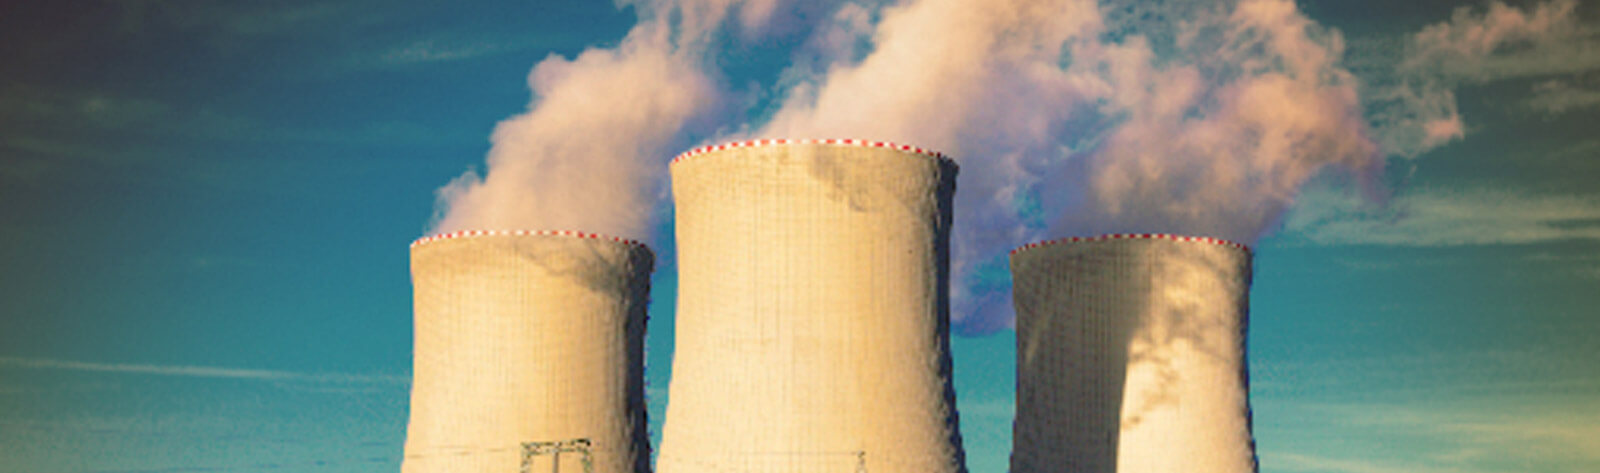 gas-detection-in-power-plants